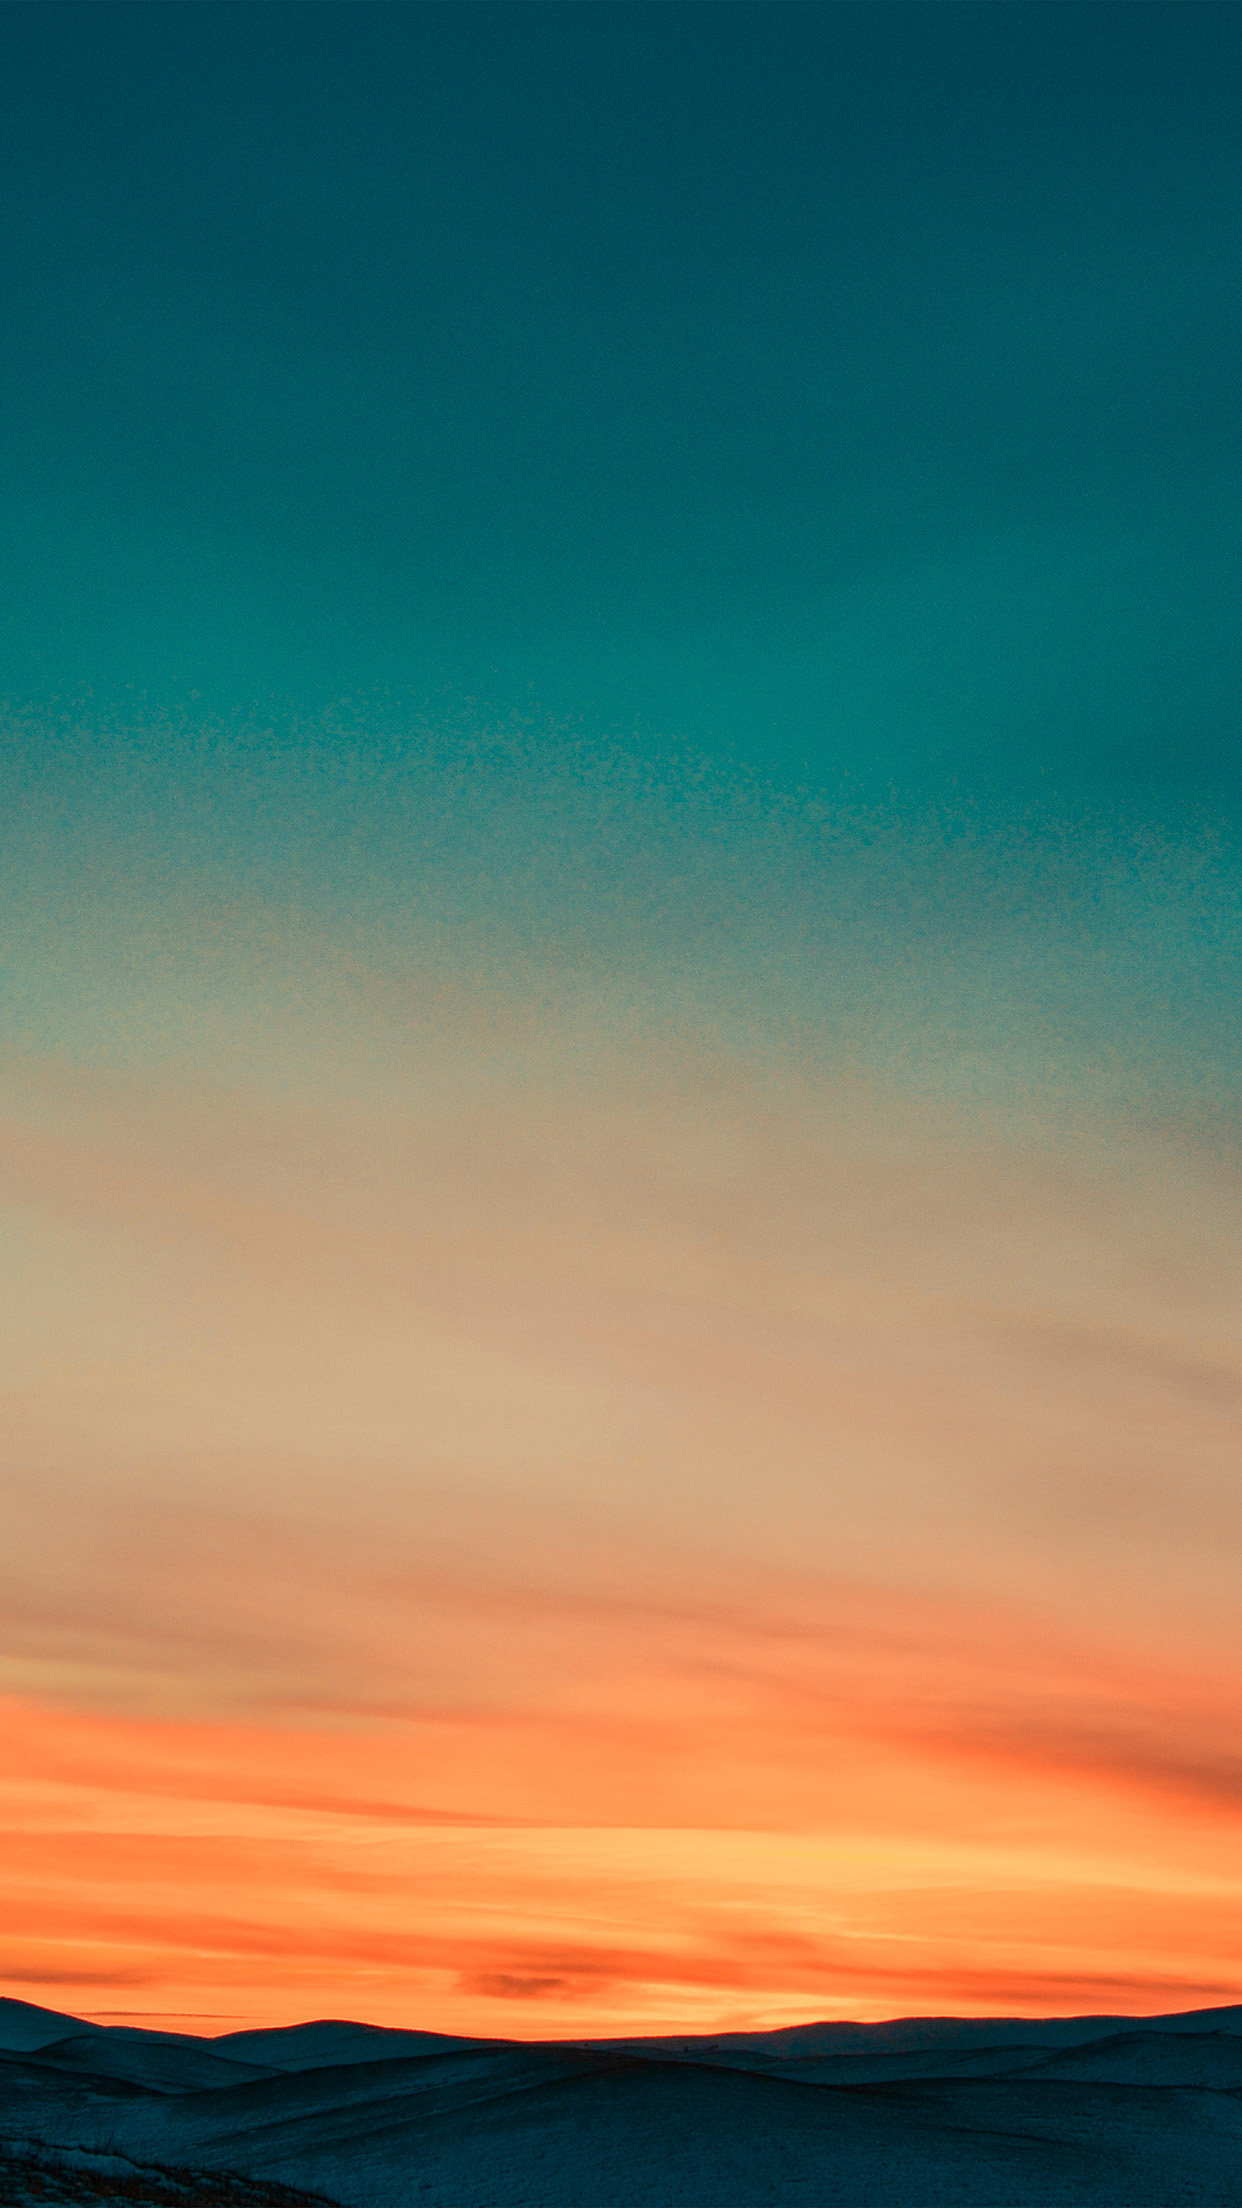 nx46-sunset-mountain-sky-red-nature-wallpaper